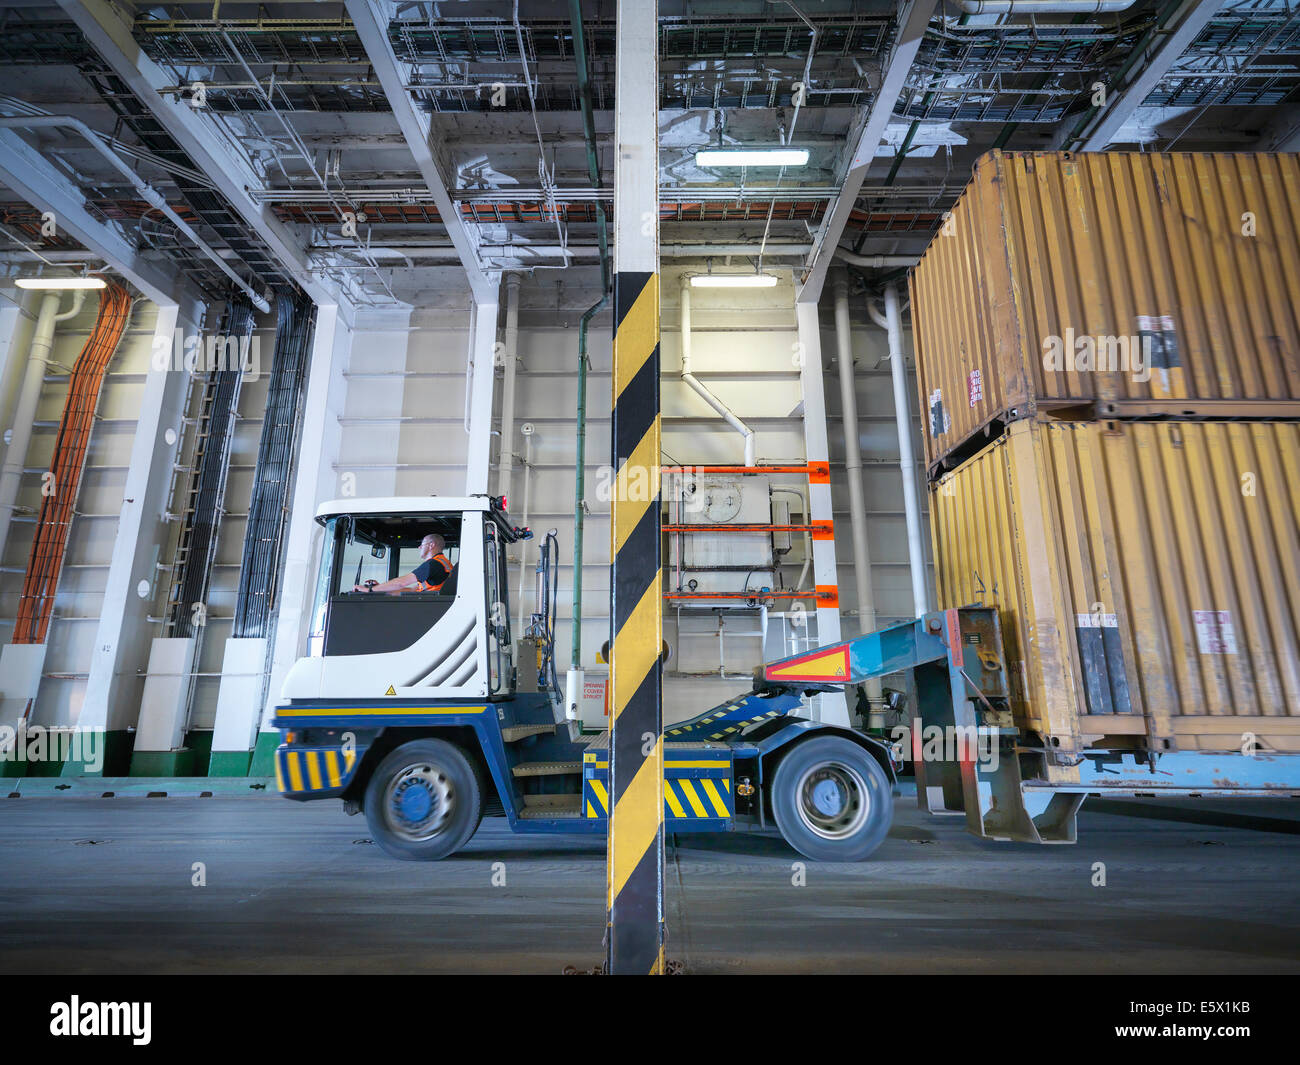 Container truck inside ship's hold - Stock Image